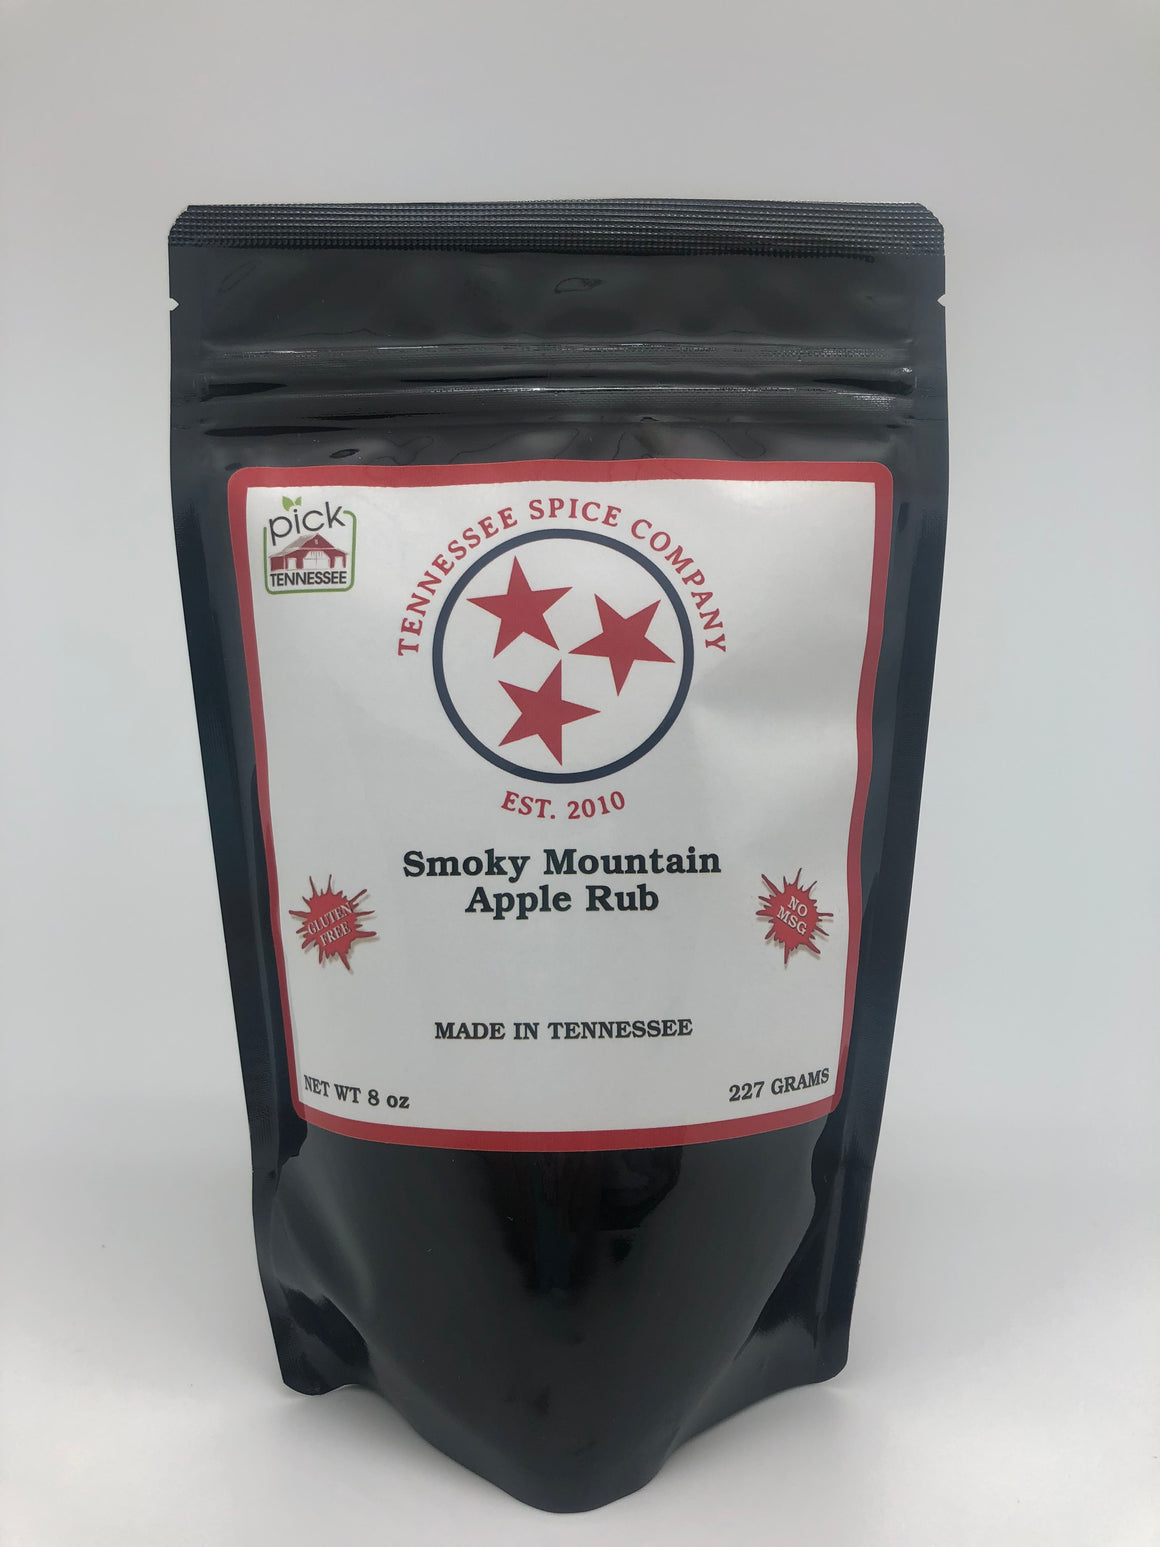 Smoky Mountain Apple Rub - TN Spice